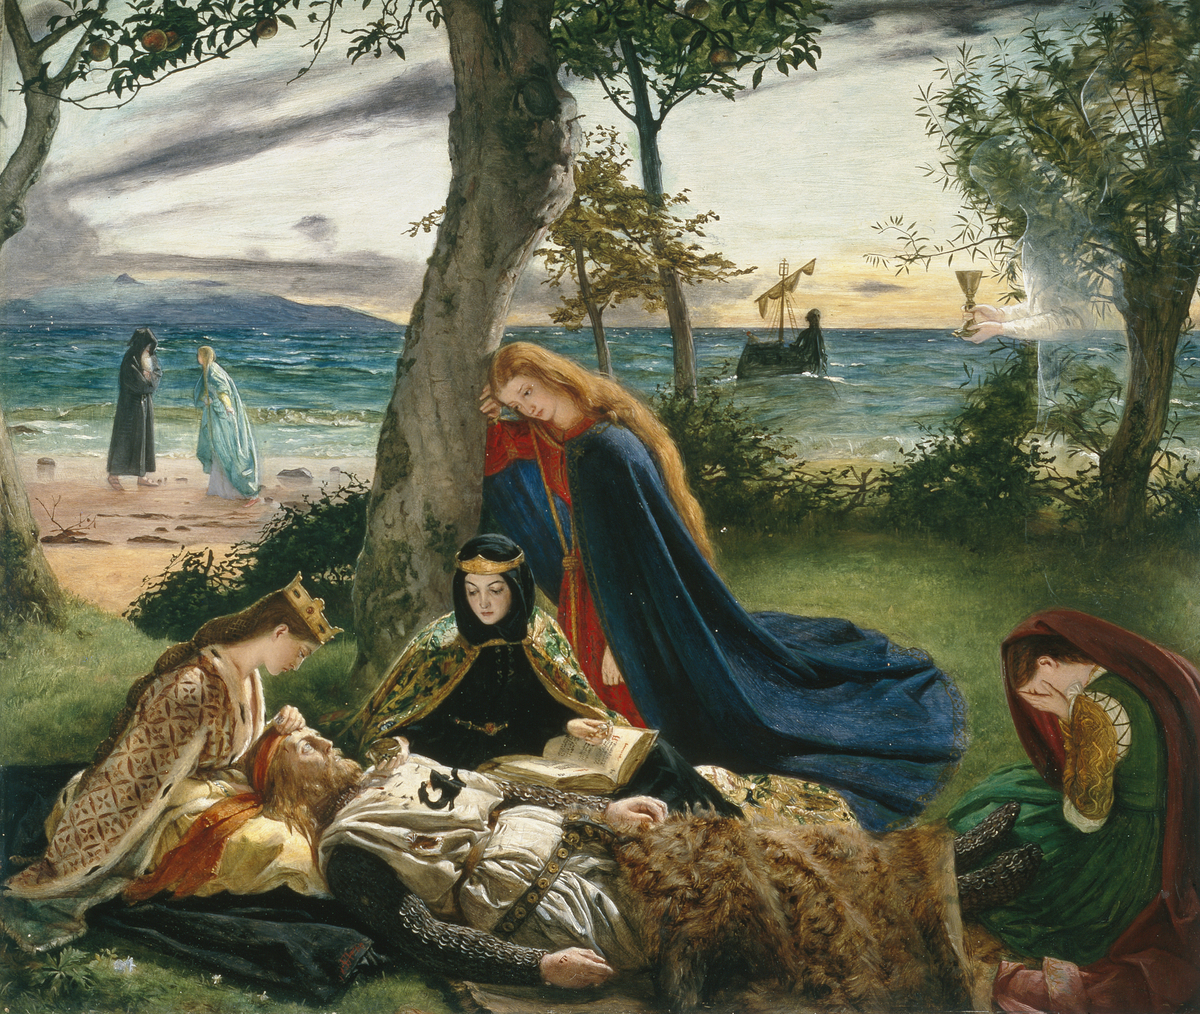 File:The Death of King Arthur by James Archer (1860).jpg